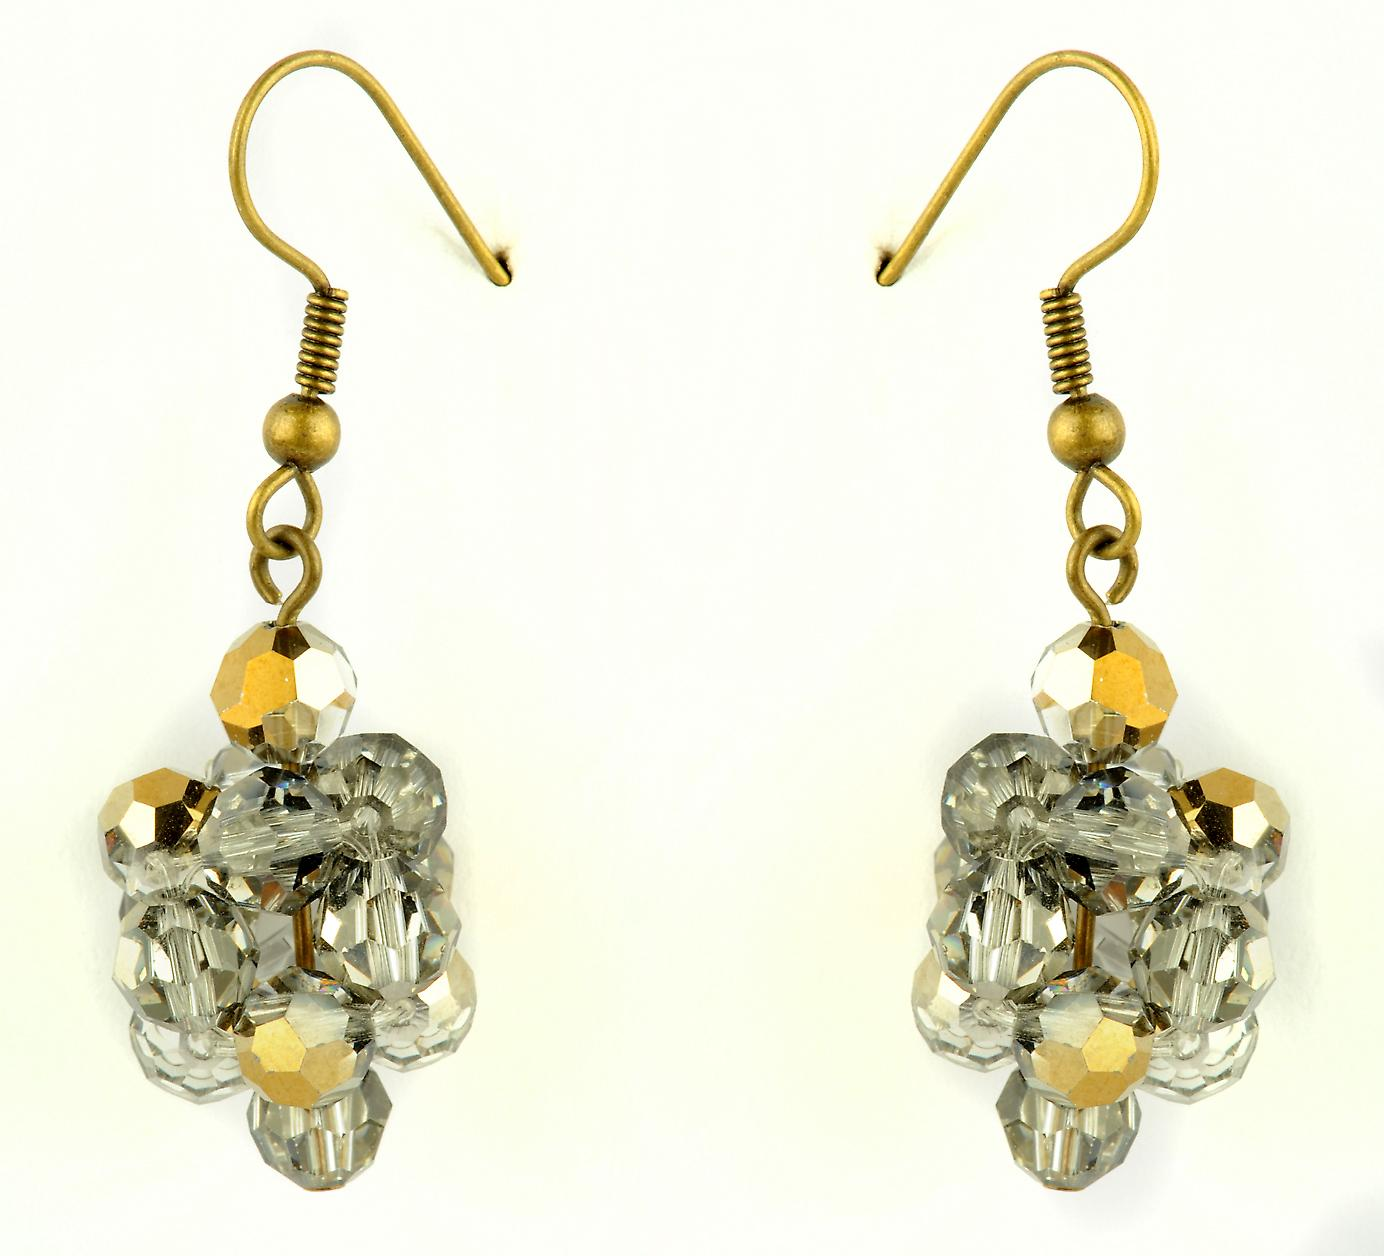 Waooh - Fashion Jewellery - WJ0783 - D'Oreille earrings with Swarovski Strass White Style Diamond - Frame Colour Gold